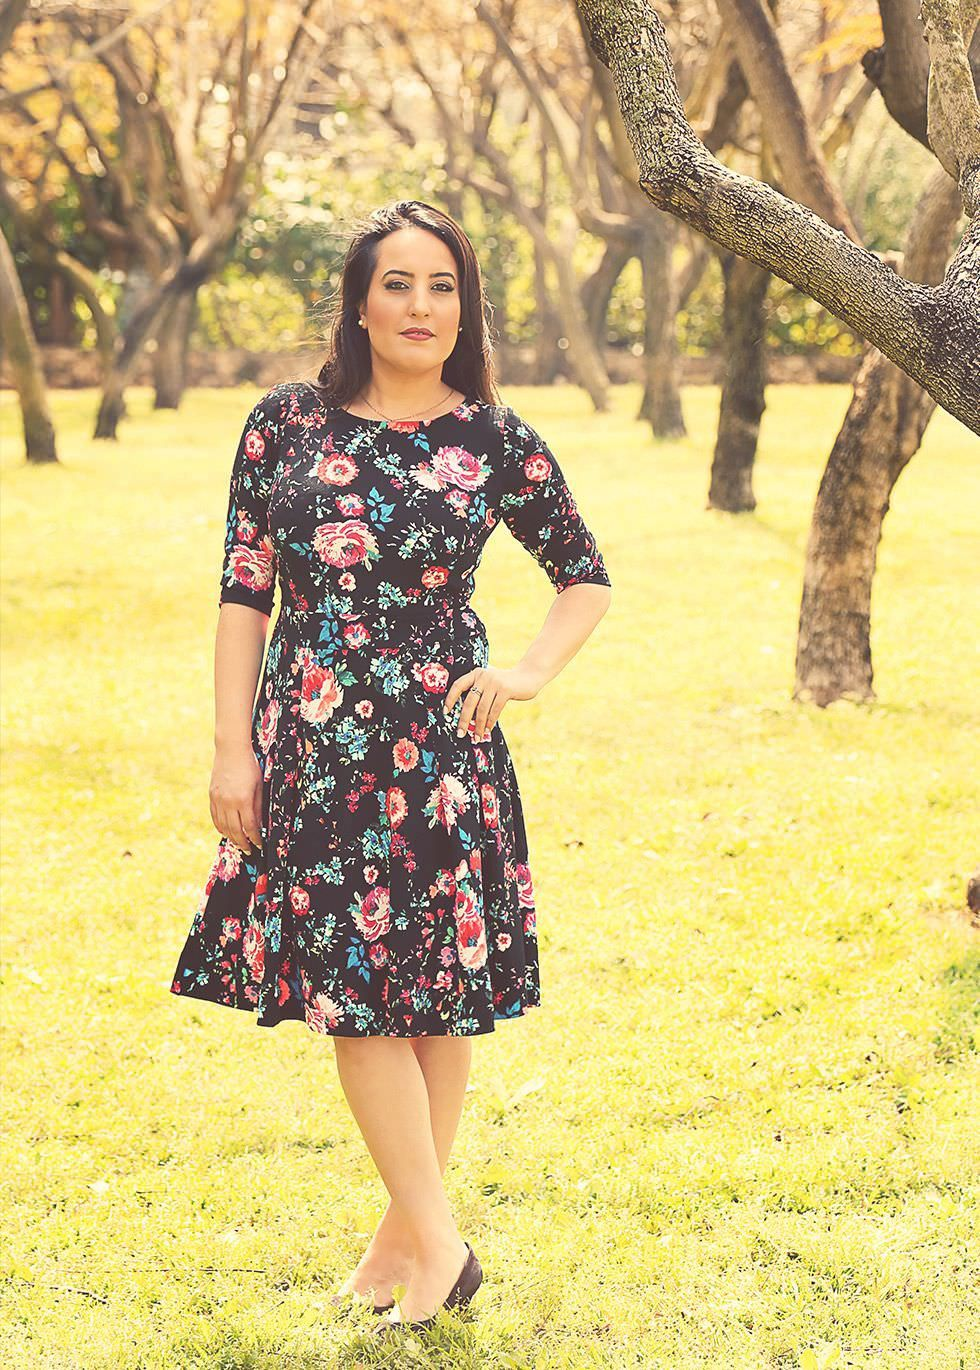 Black floral dress modest chic holiday dress with floral print